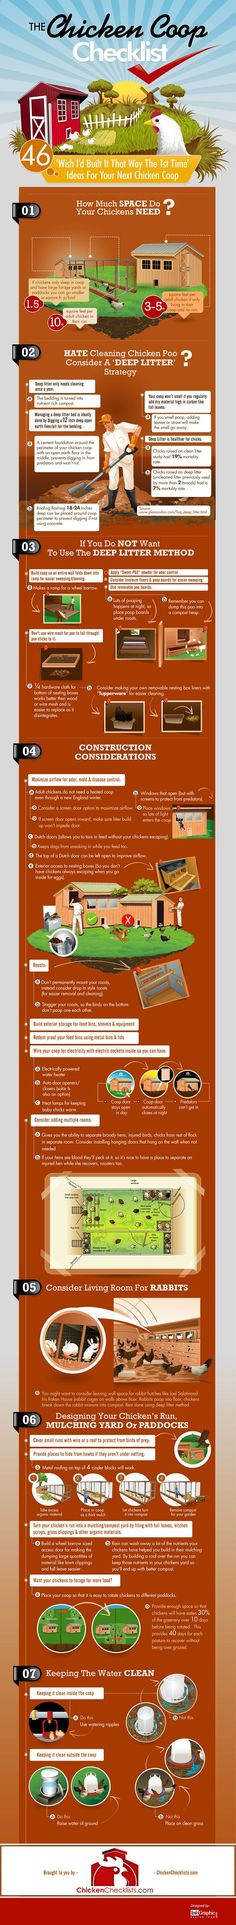 Ready to build your chicken coop? | Check out this checklist #survivalife www.survivallife.com